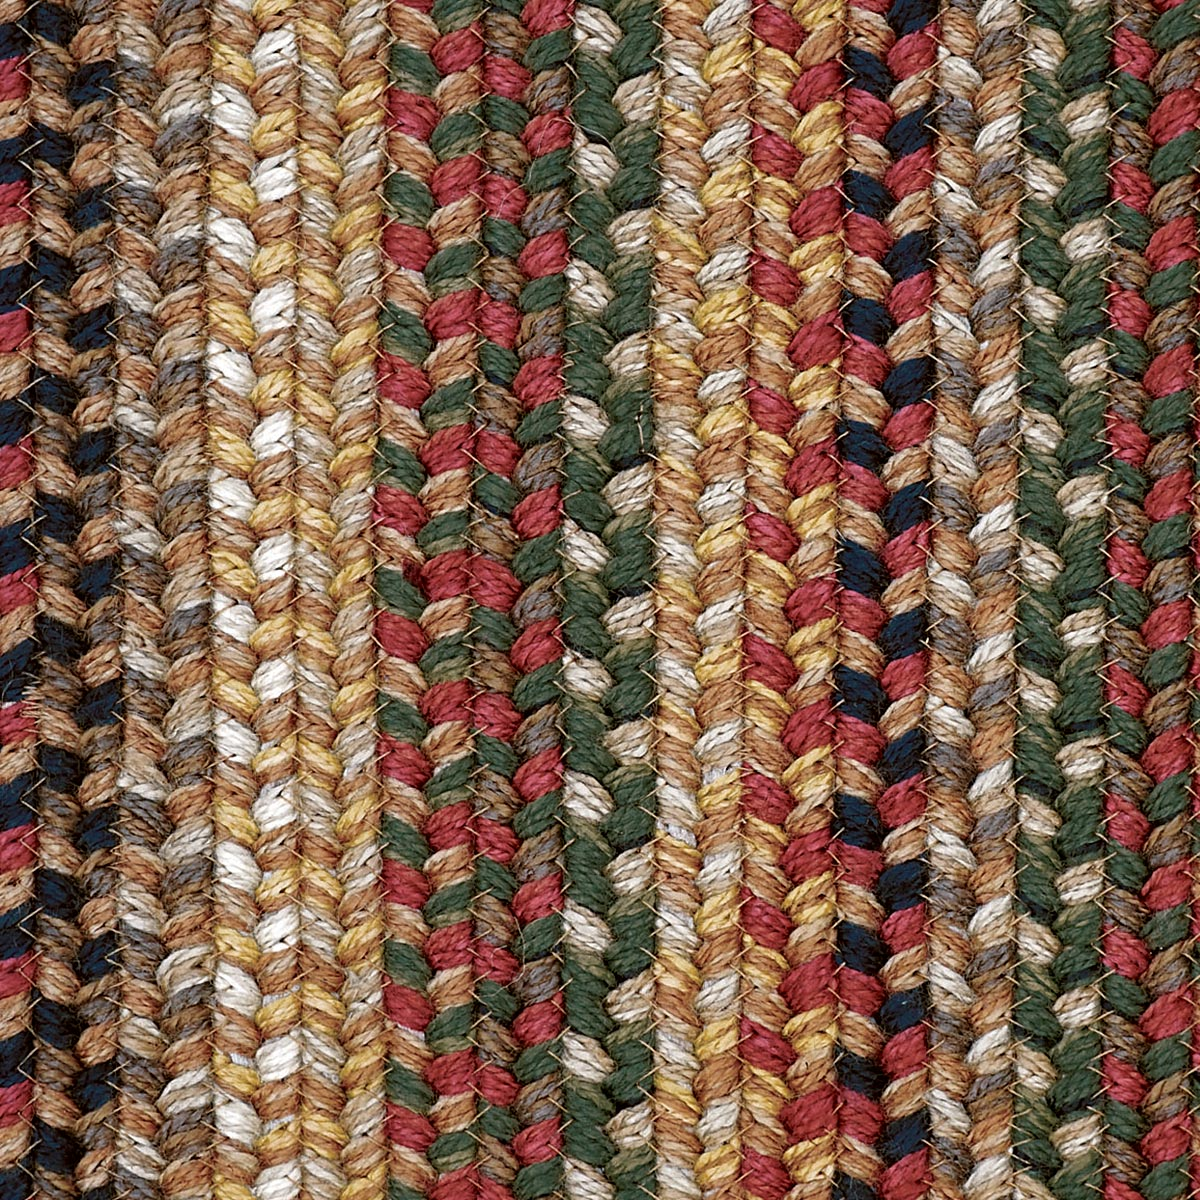 Country Home Decor: This Just In! Ultra Wool Braided Rugs